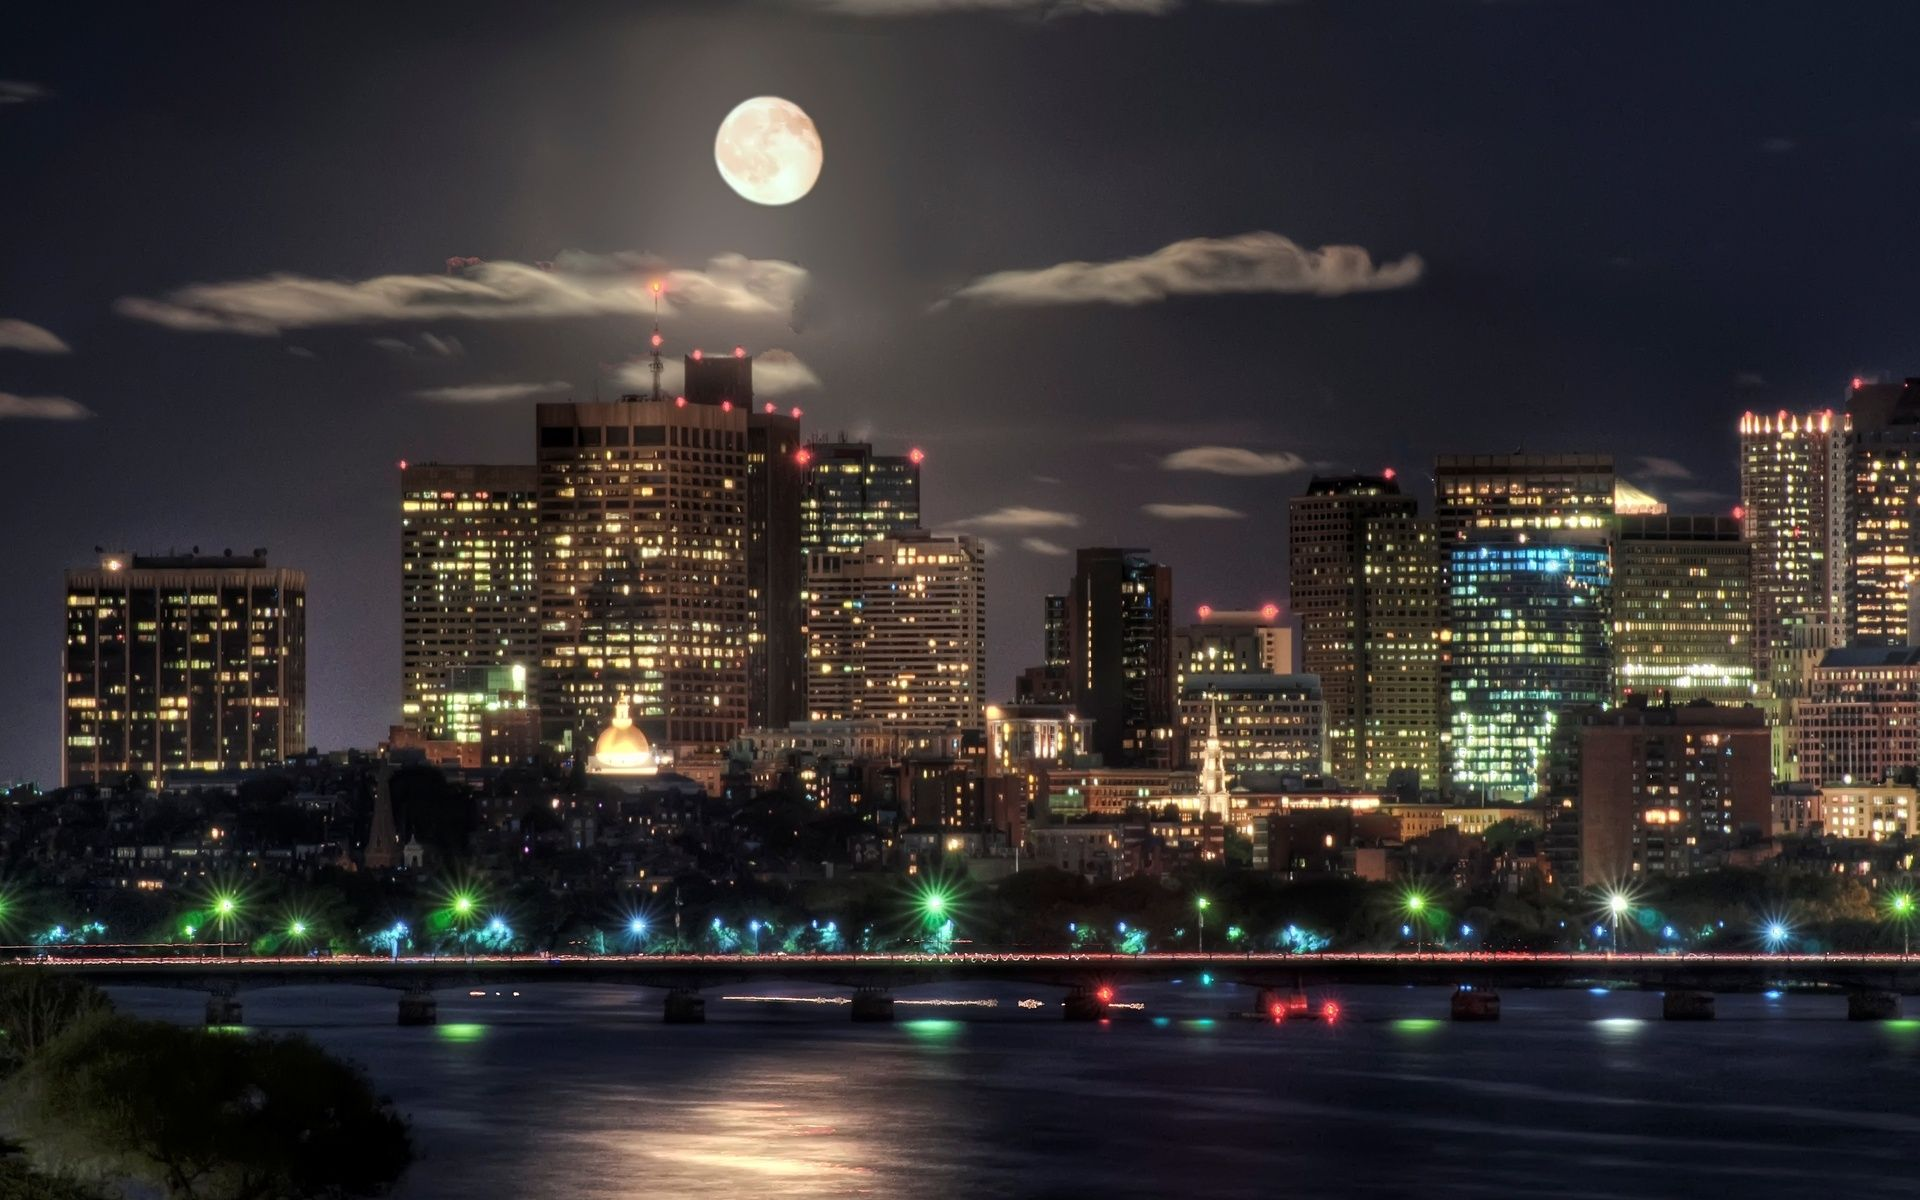 Image detail for -Wallpaper night, city, lights, moon | HD ...